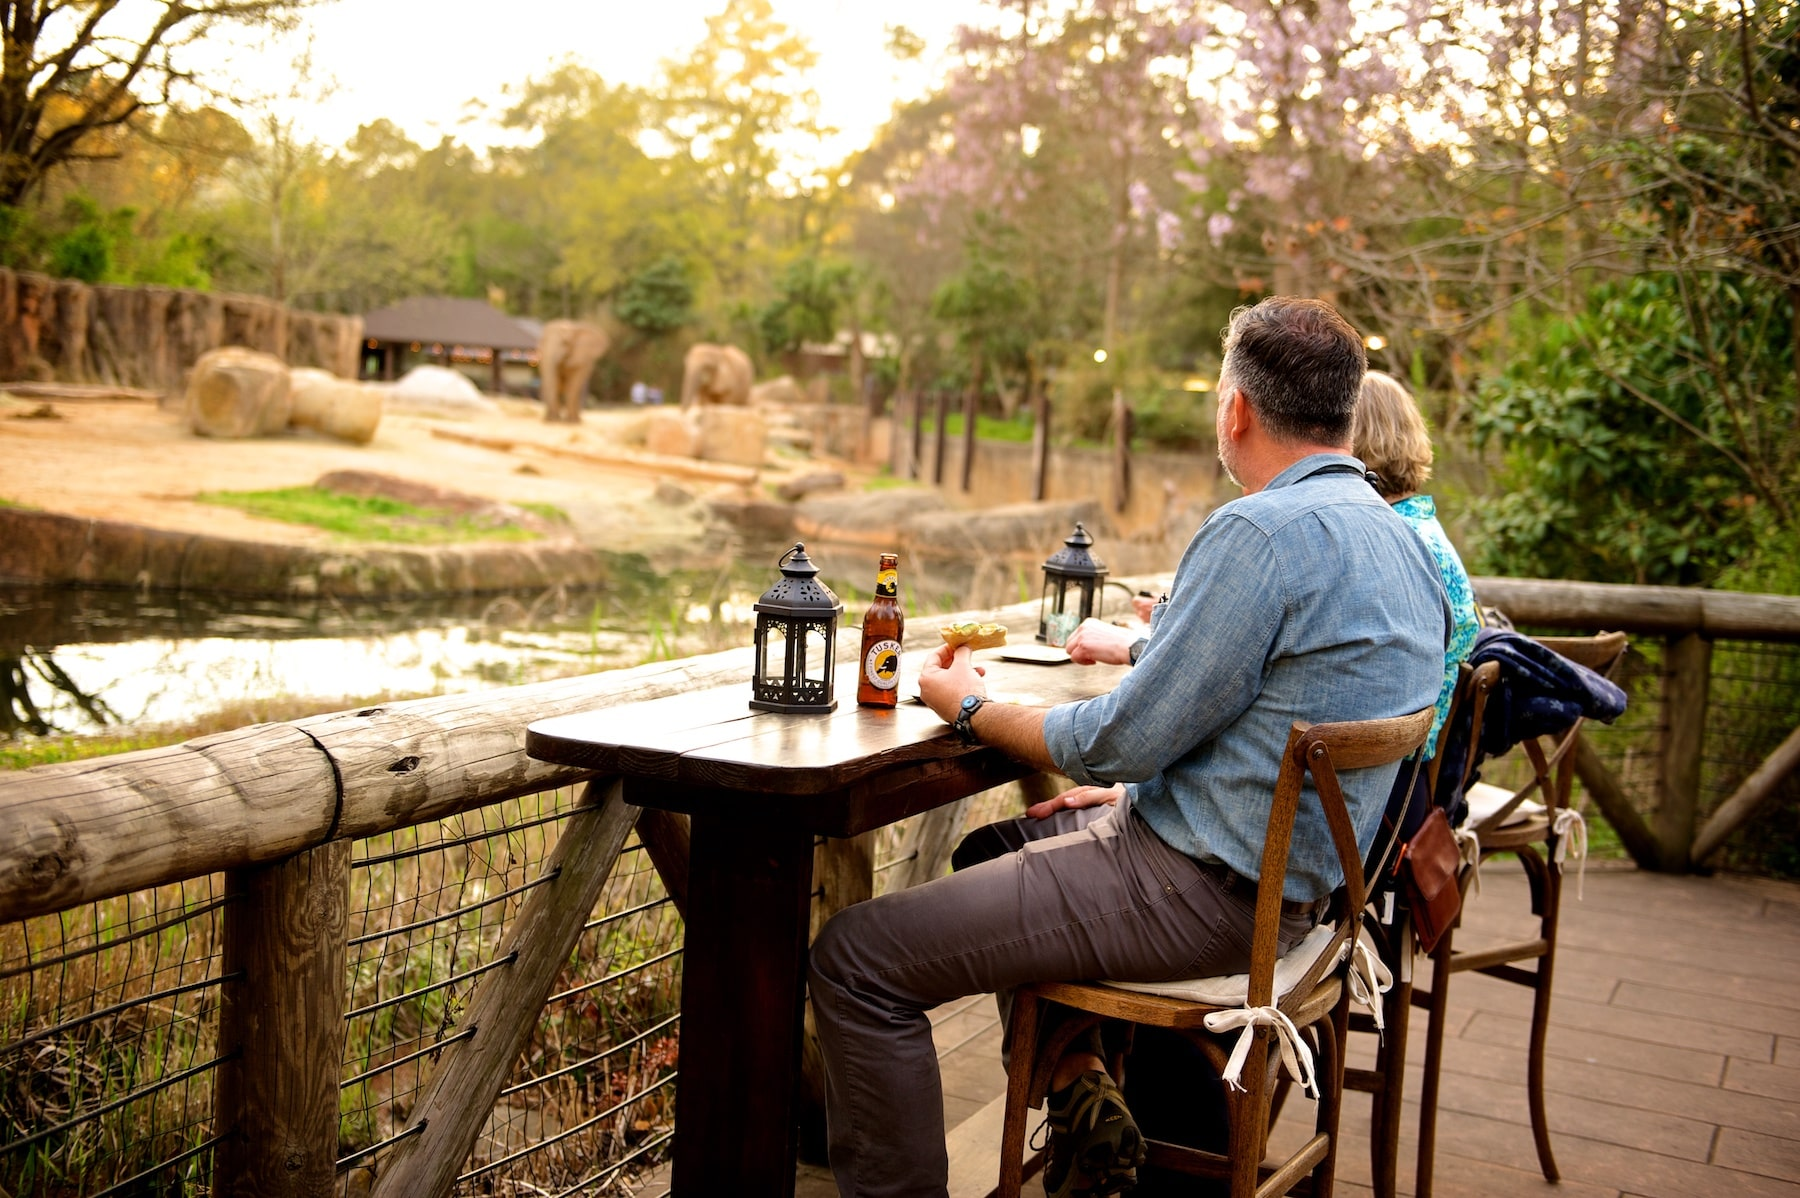 We offer unique event venues overlooking our elephant and now rhino enclosure in Columbia SC's Riverbanks Zoo.